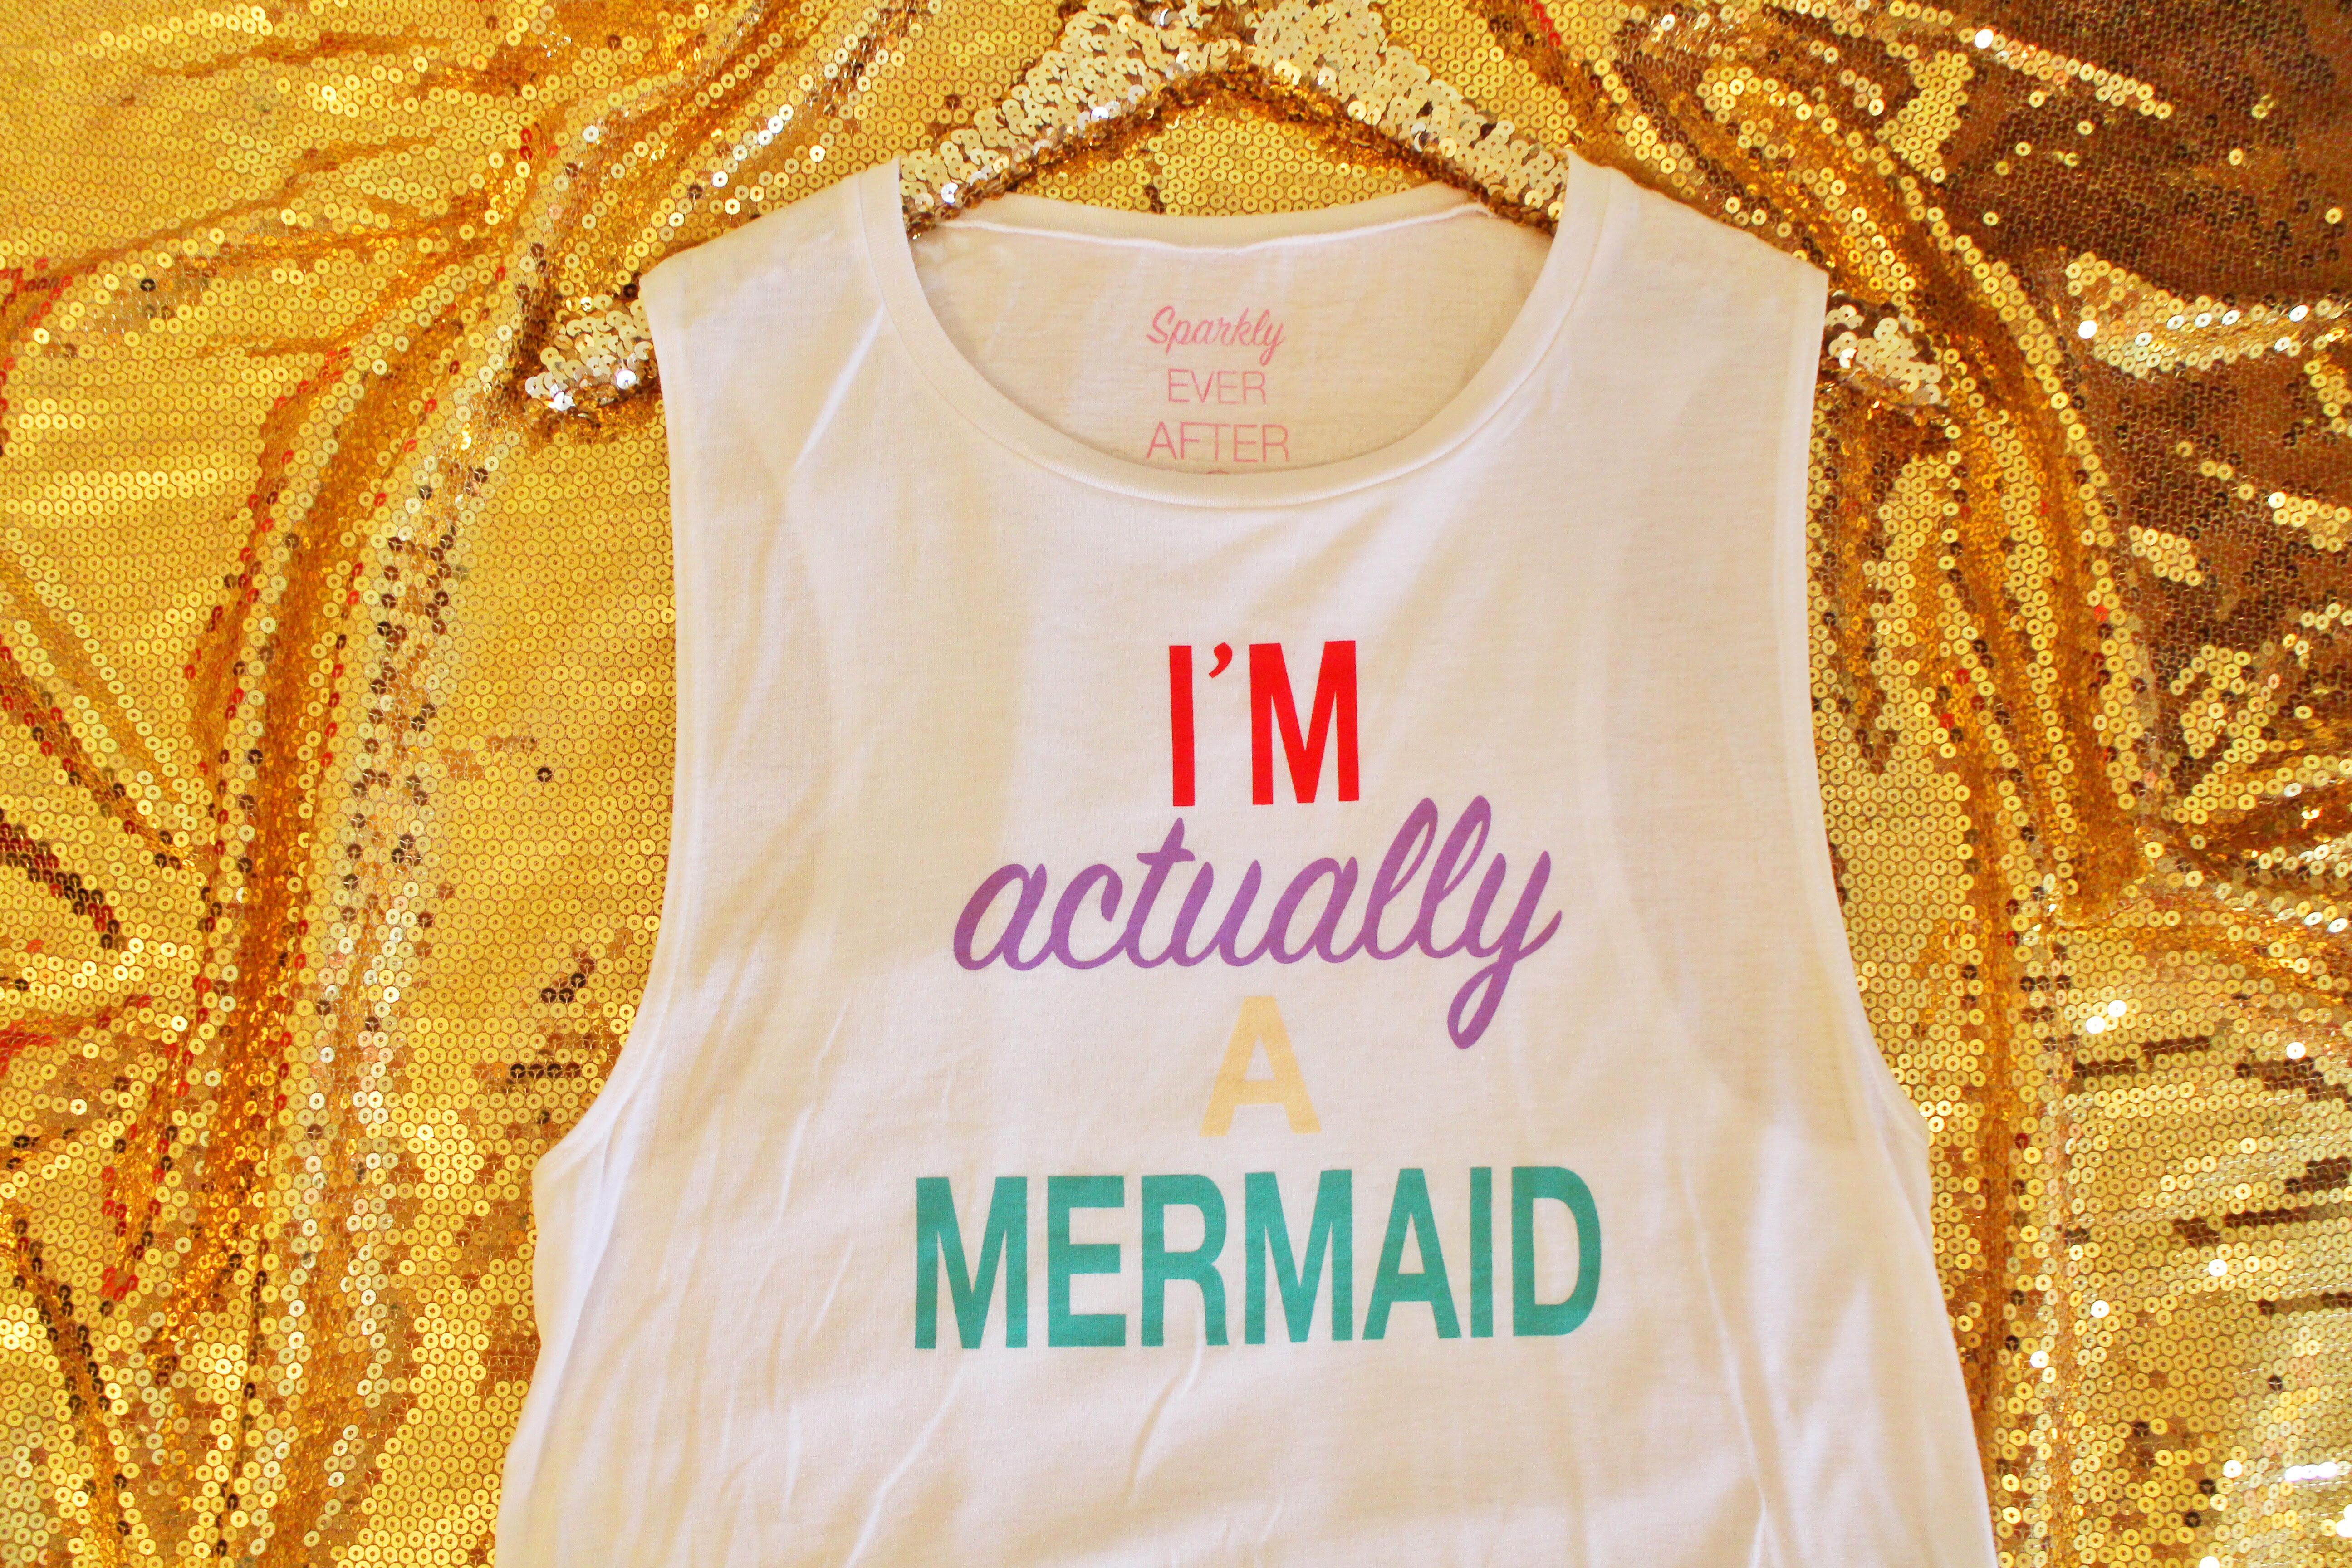 I'm Actually a Mermaid Shirt by Sparkly Ever After